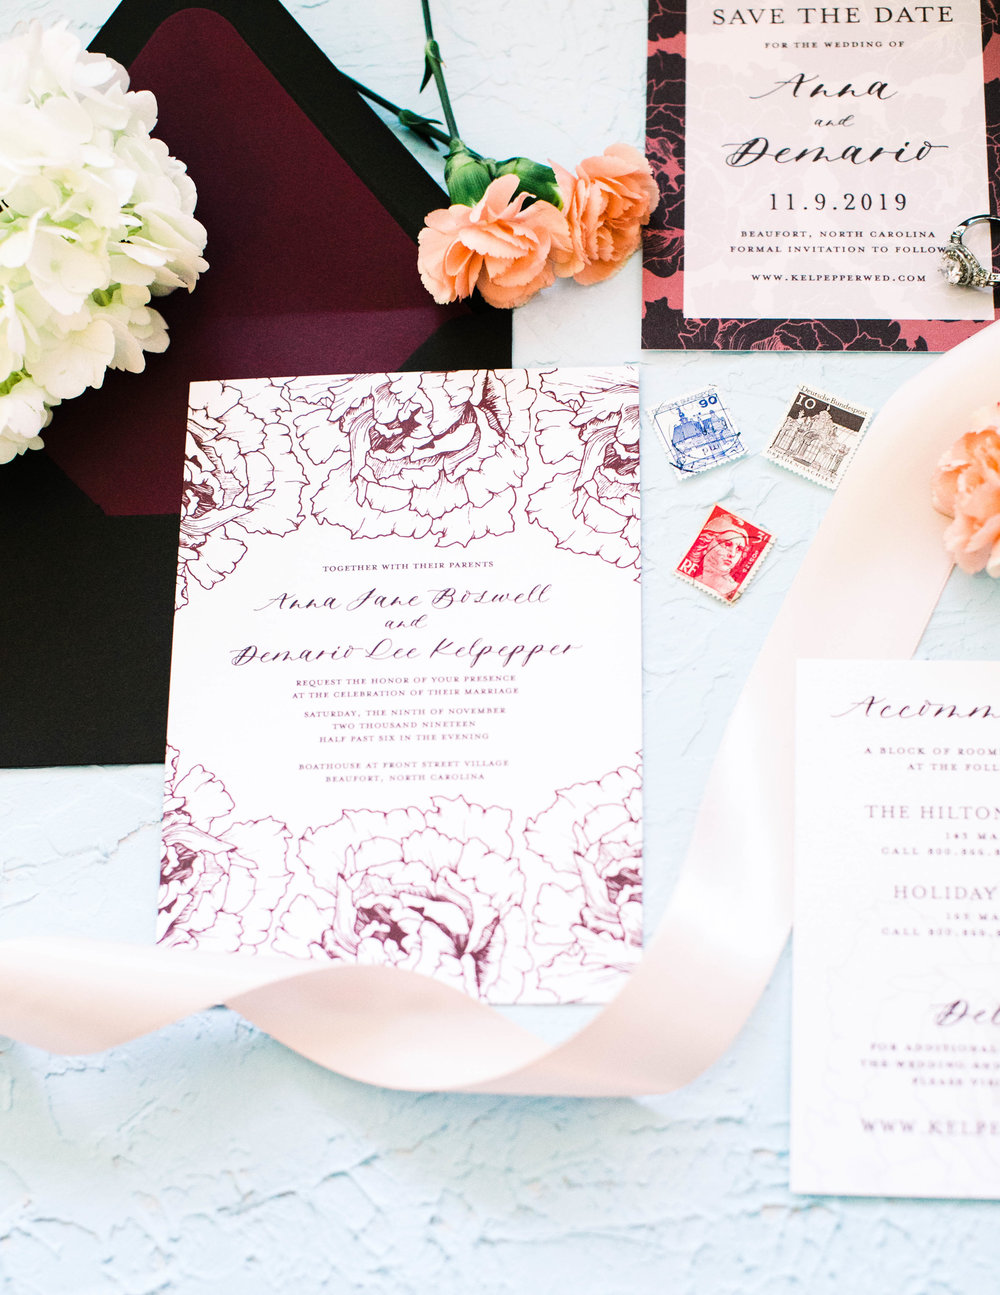 Anna Hand Drawn Wedding Invitation Burgundy Peonies Feathered Heart PrintsAnna 3W2A0353.jpg